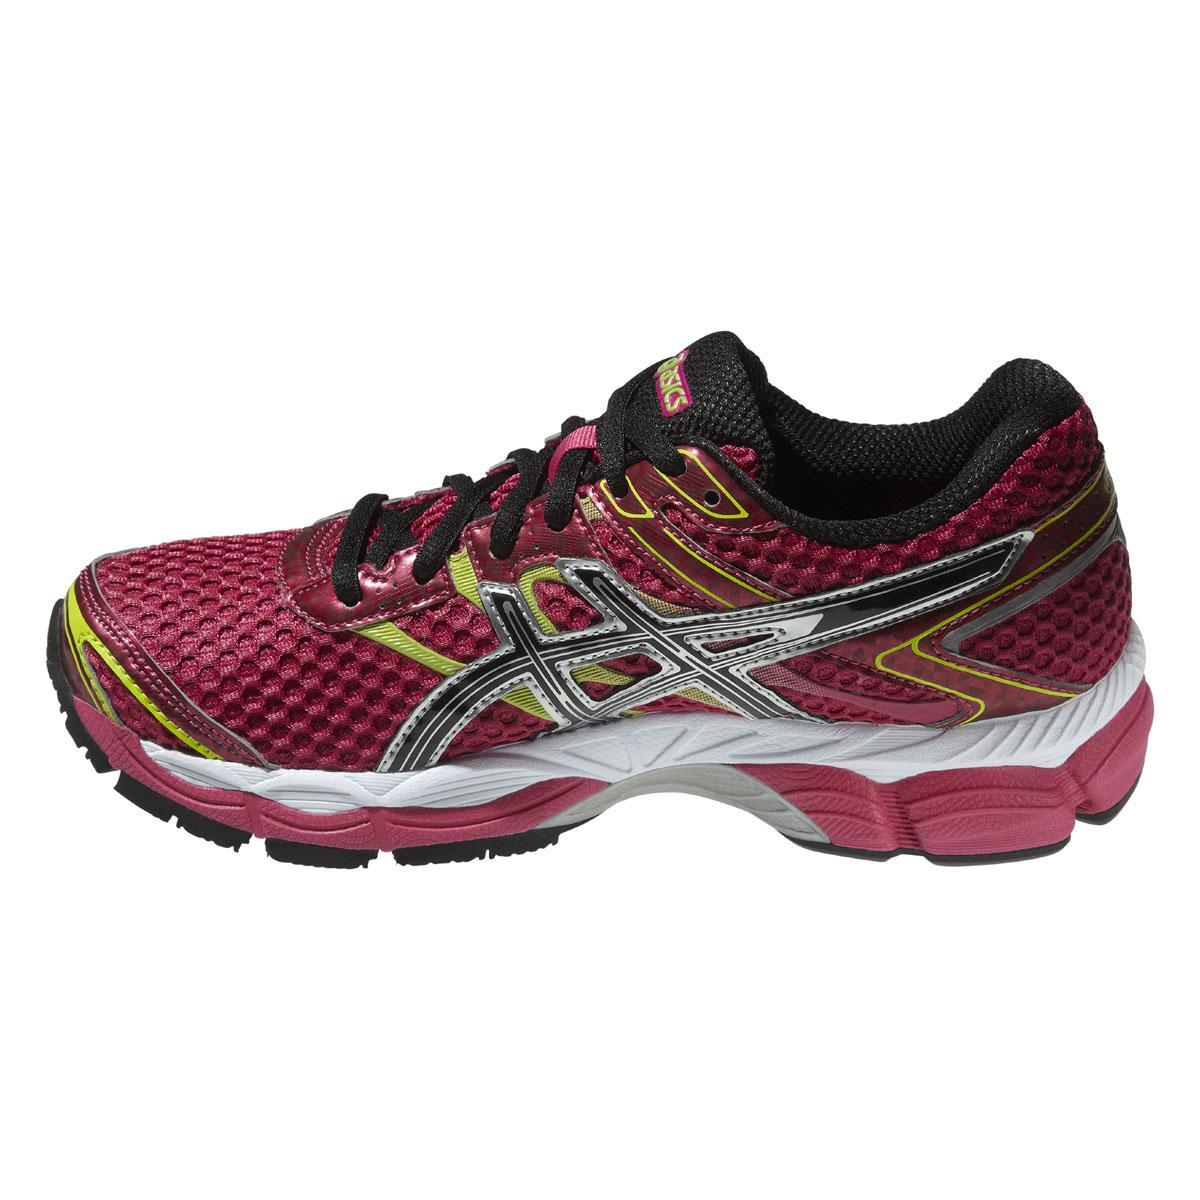 asics womens gel cumulus 16 running shoes raspberry black lime. Black Bedroom Furniture Sets. Home Design Ideas